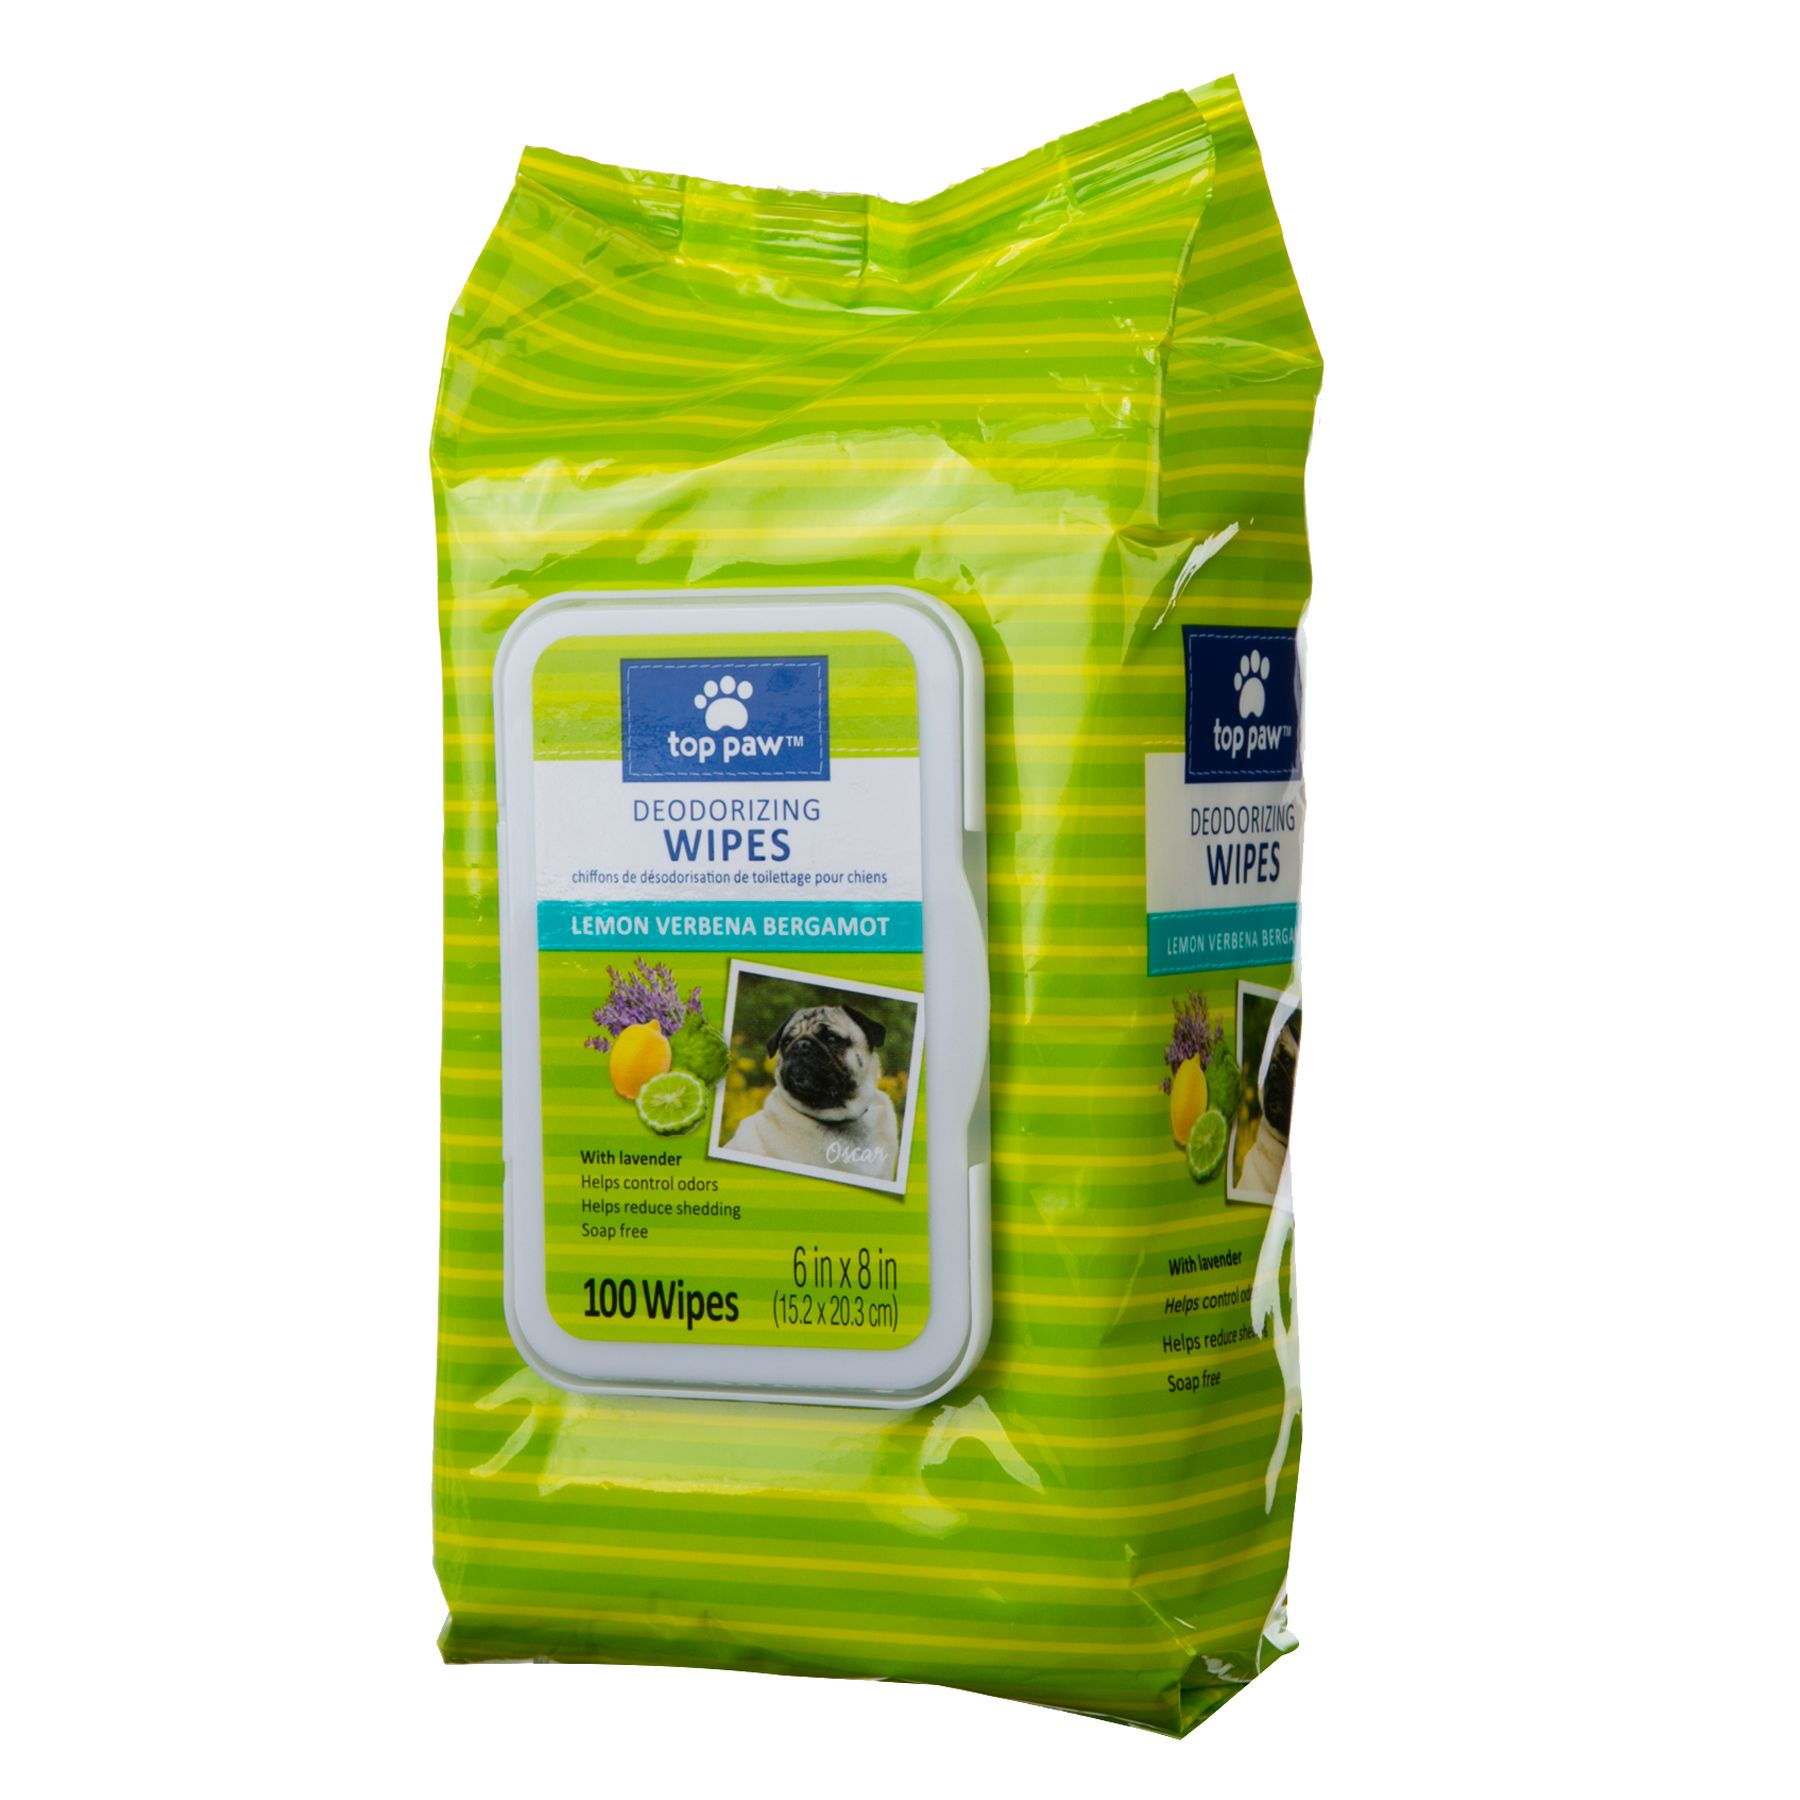 Top Paw, Lemon Verbena Bergamont Deodorizing Dog Wipes size: 100 Count 5157440